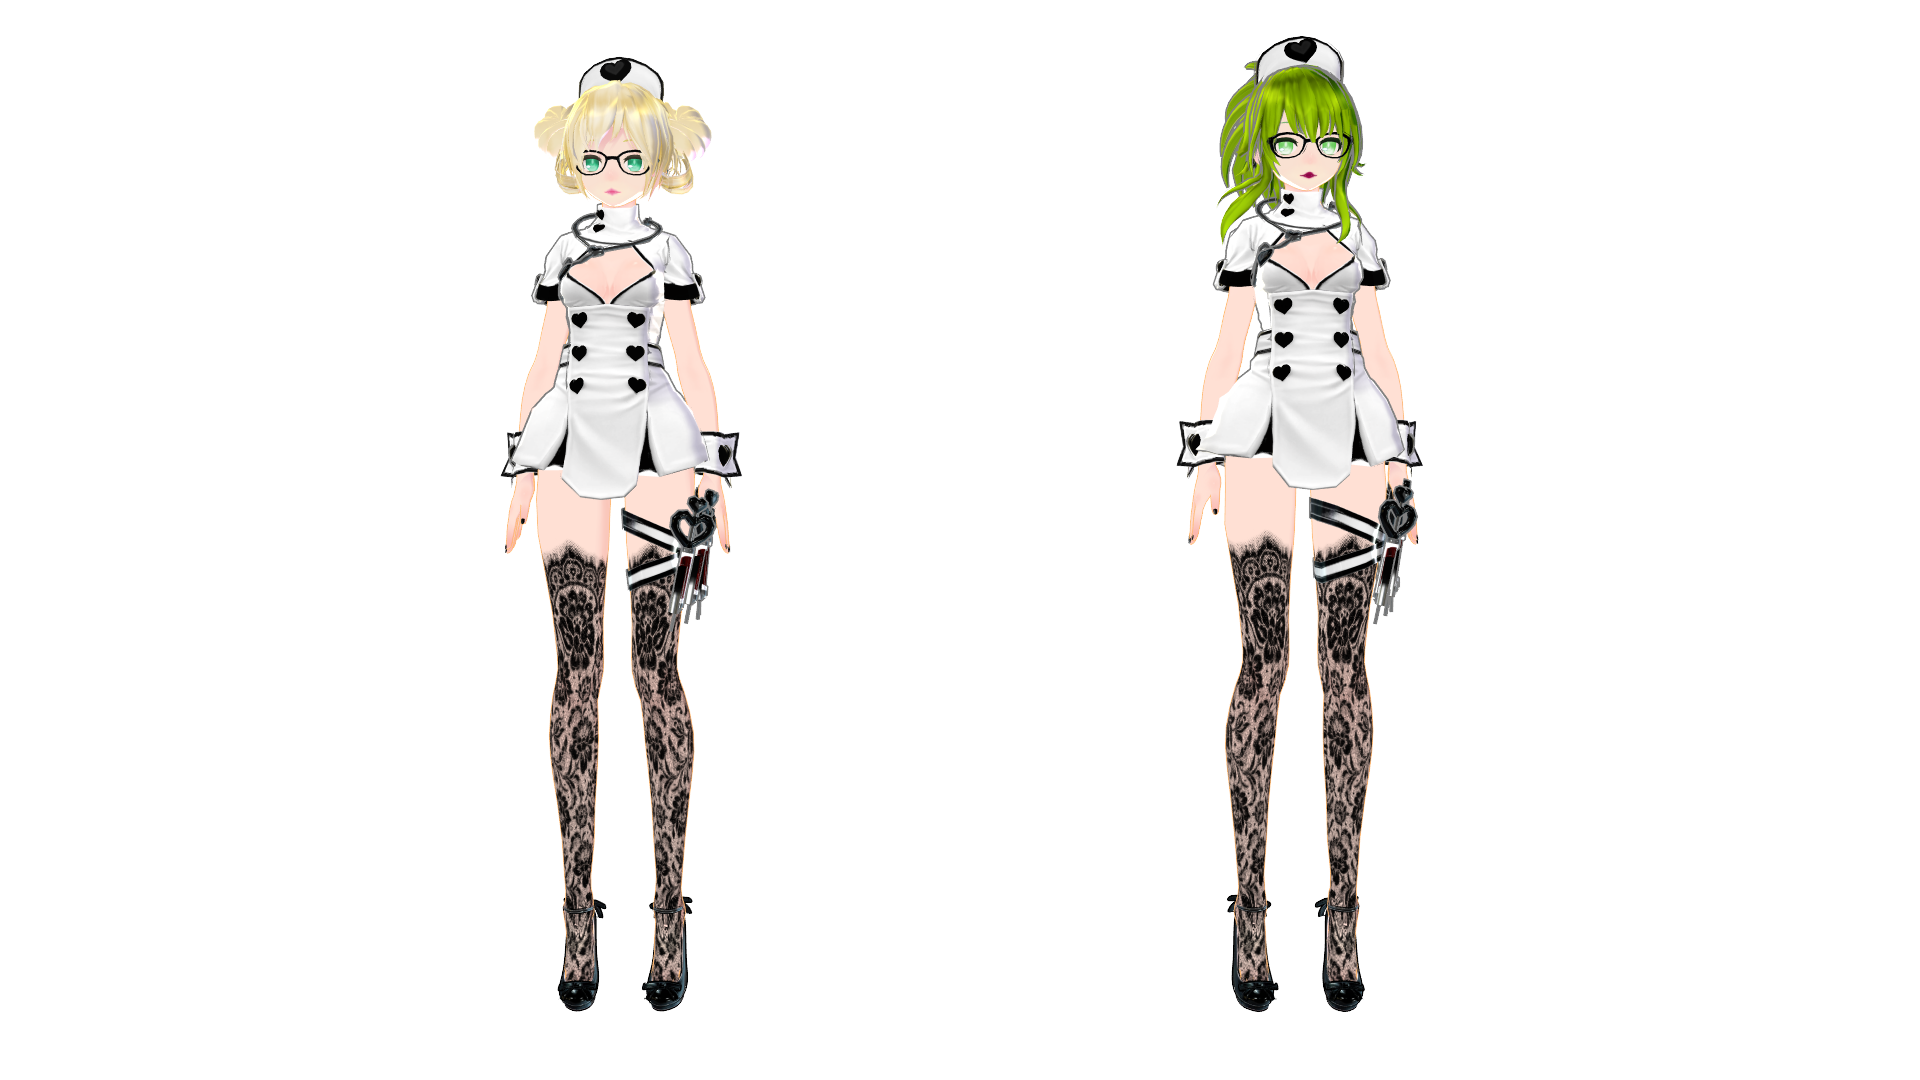 Mmd r18 my gumi experiments with weird science